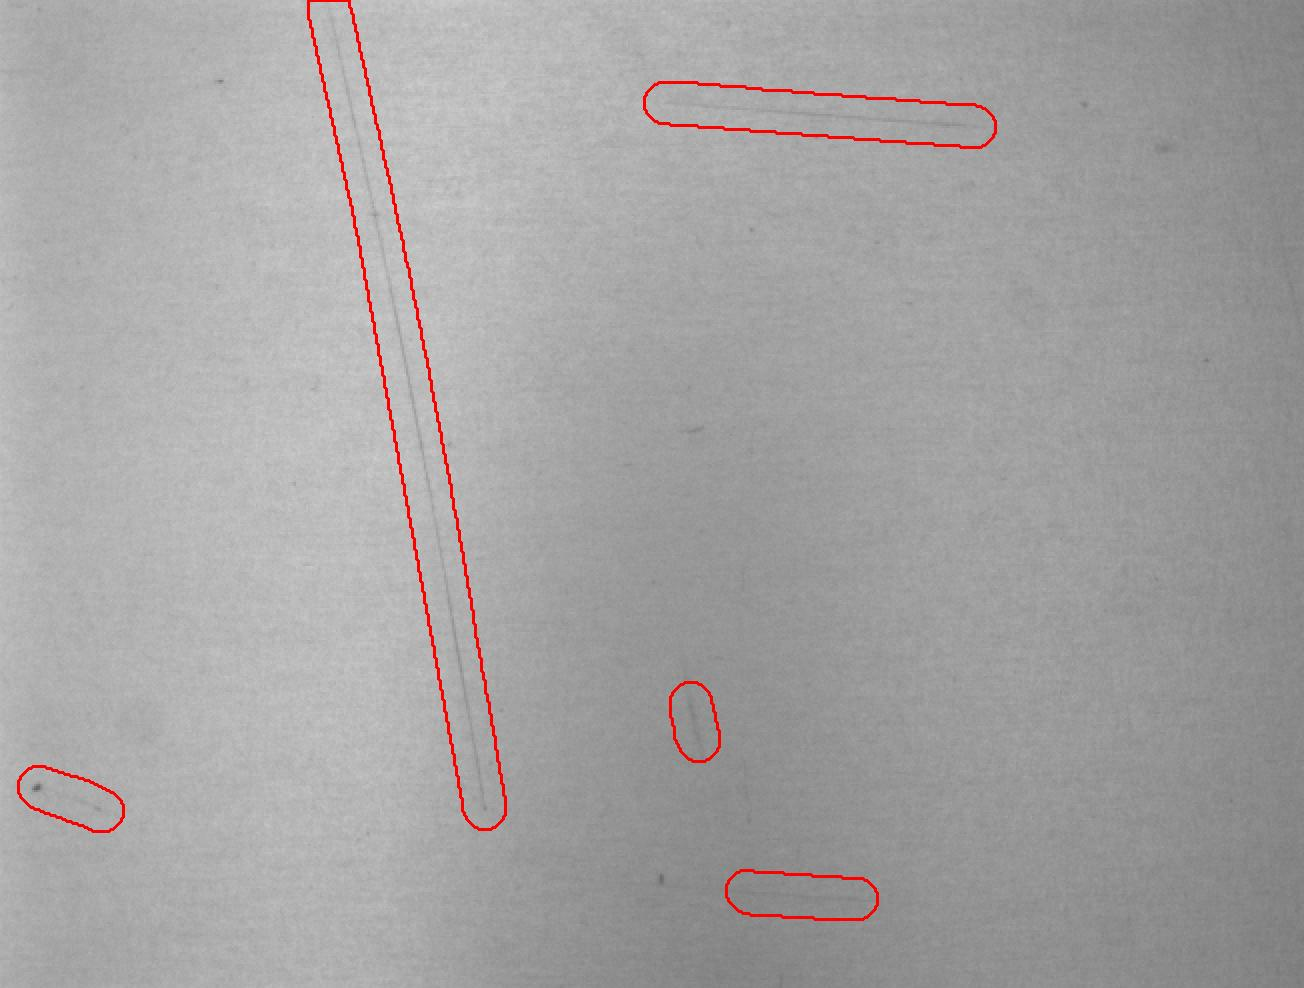 Anomaly detection (e.g. surface scratches)